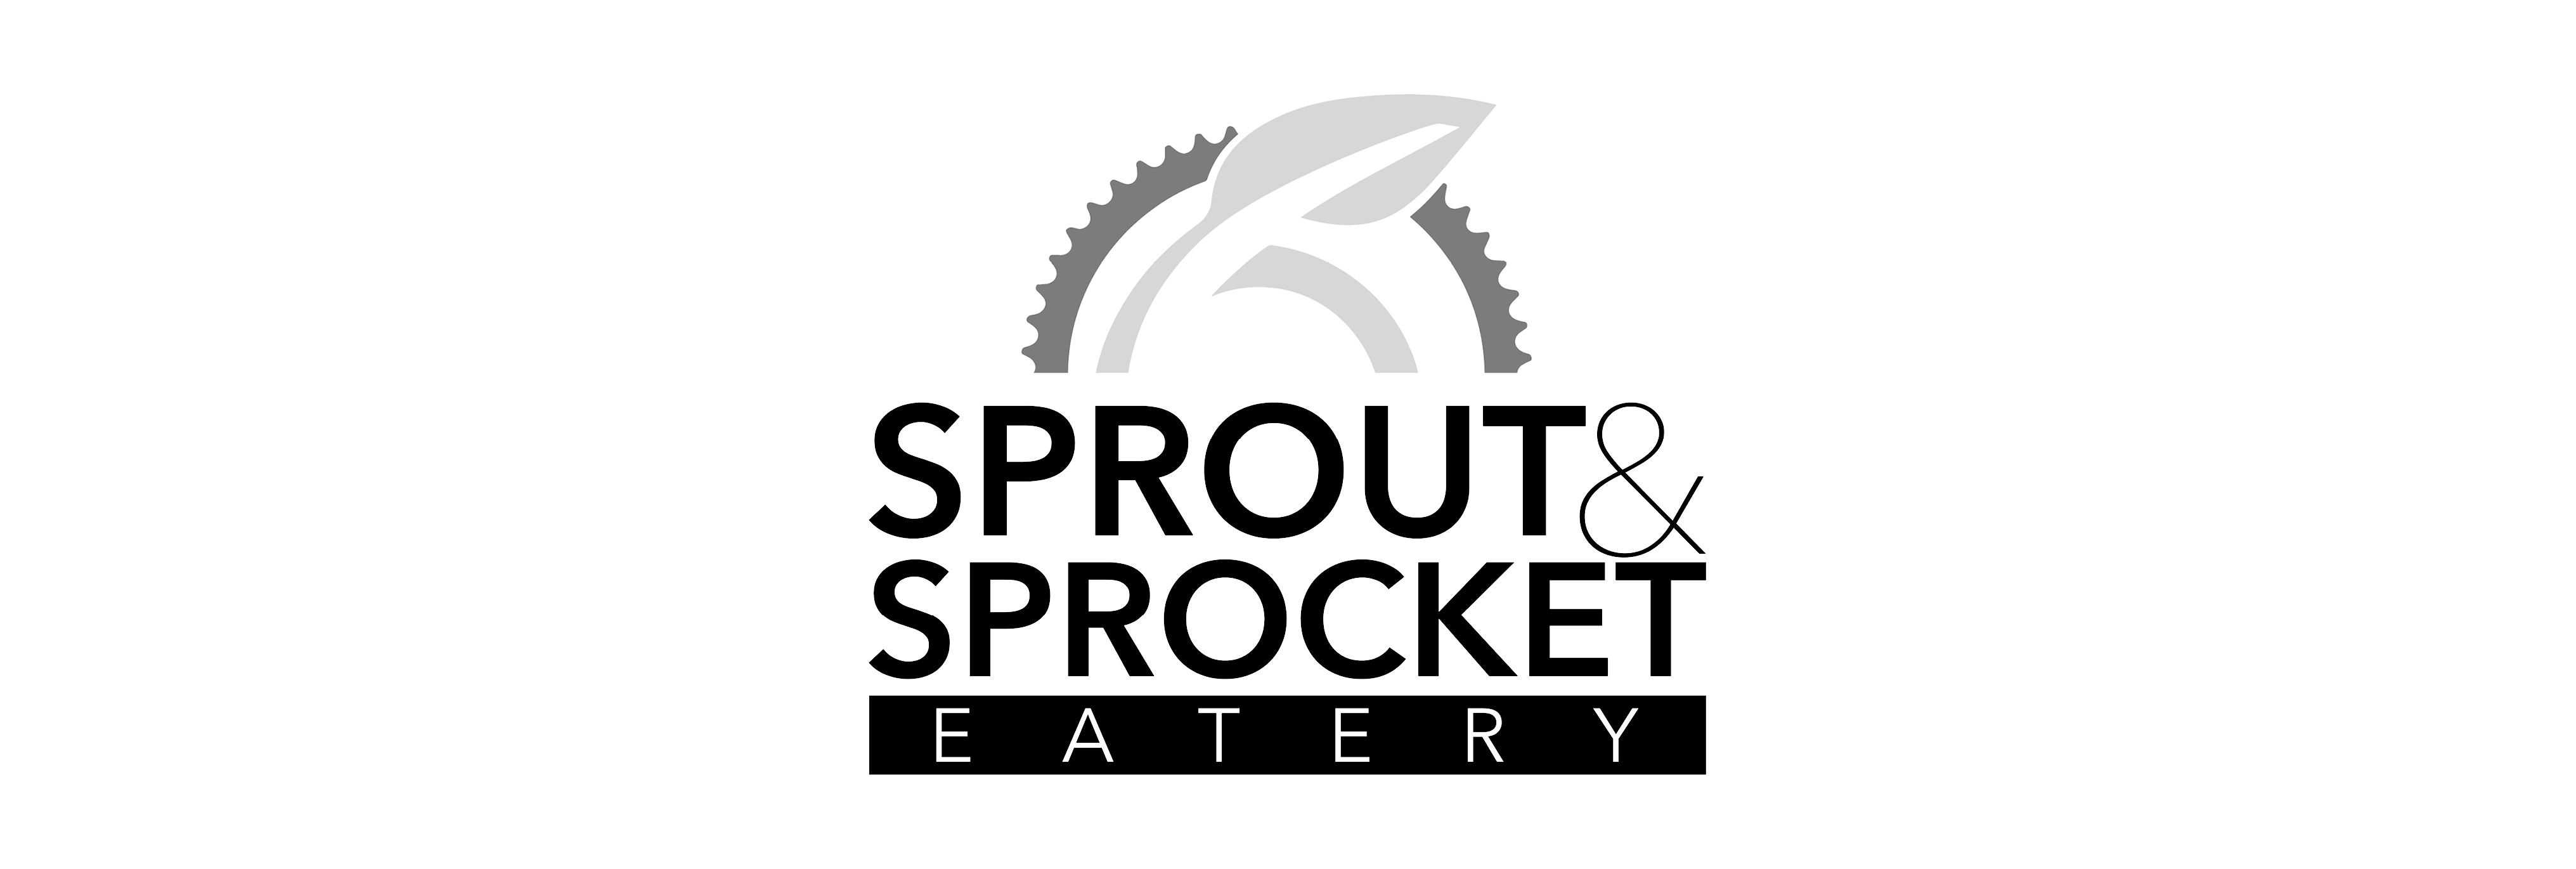 Sprout & Sprocket | Odd Poppy Advertising Agency | Magaliesburg | Hekpoort | Clients